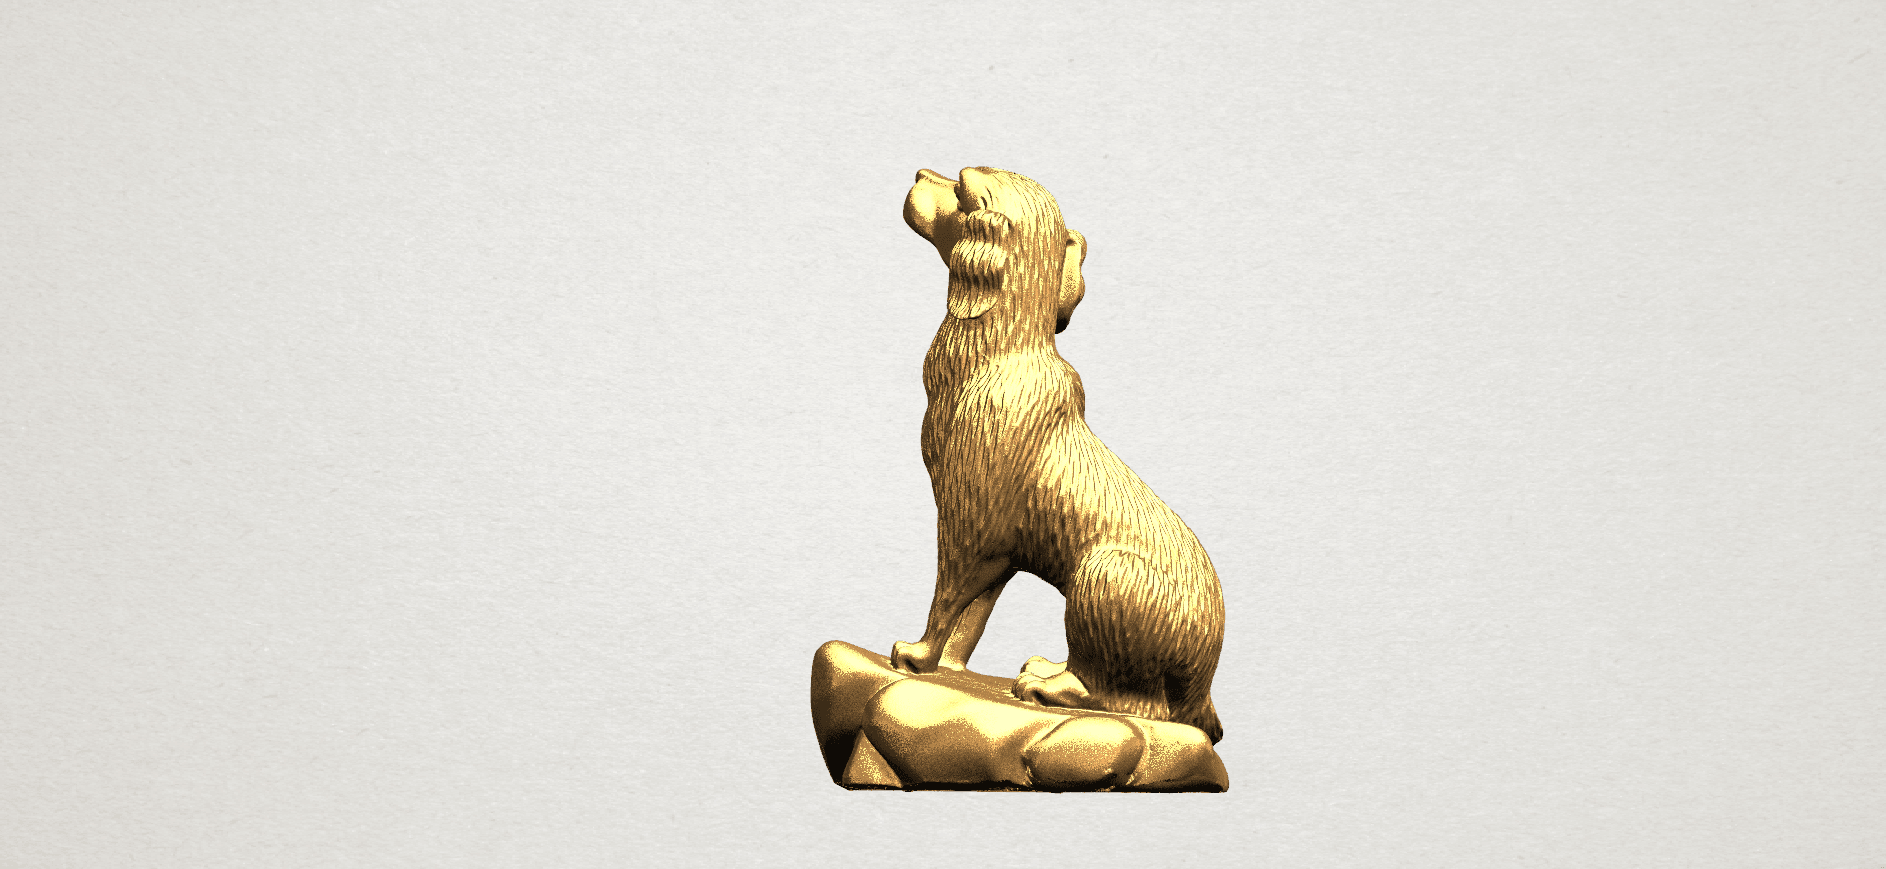 ZChinese Horoscope11-B01.png Download free STL file Chinese Horoscope 11 Dog • 3D print design, GeorgesNikkei